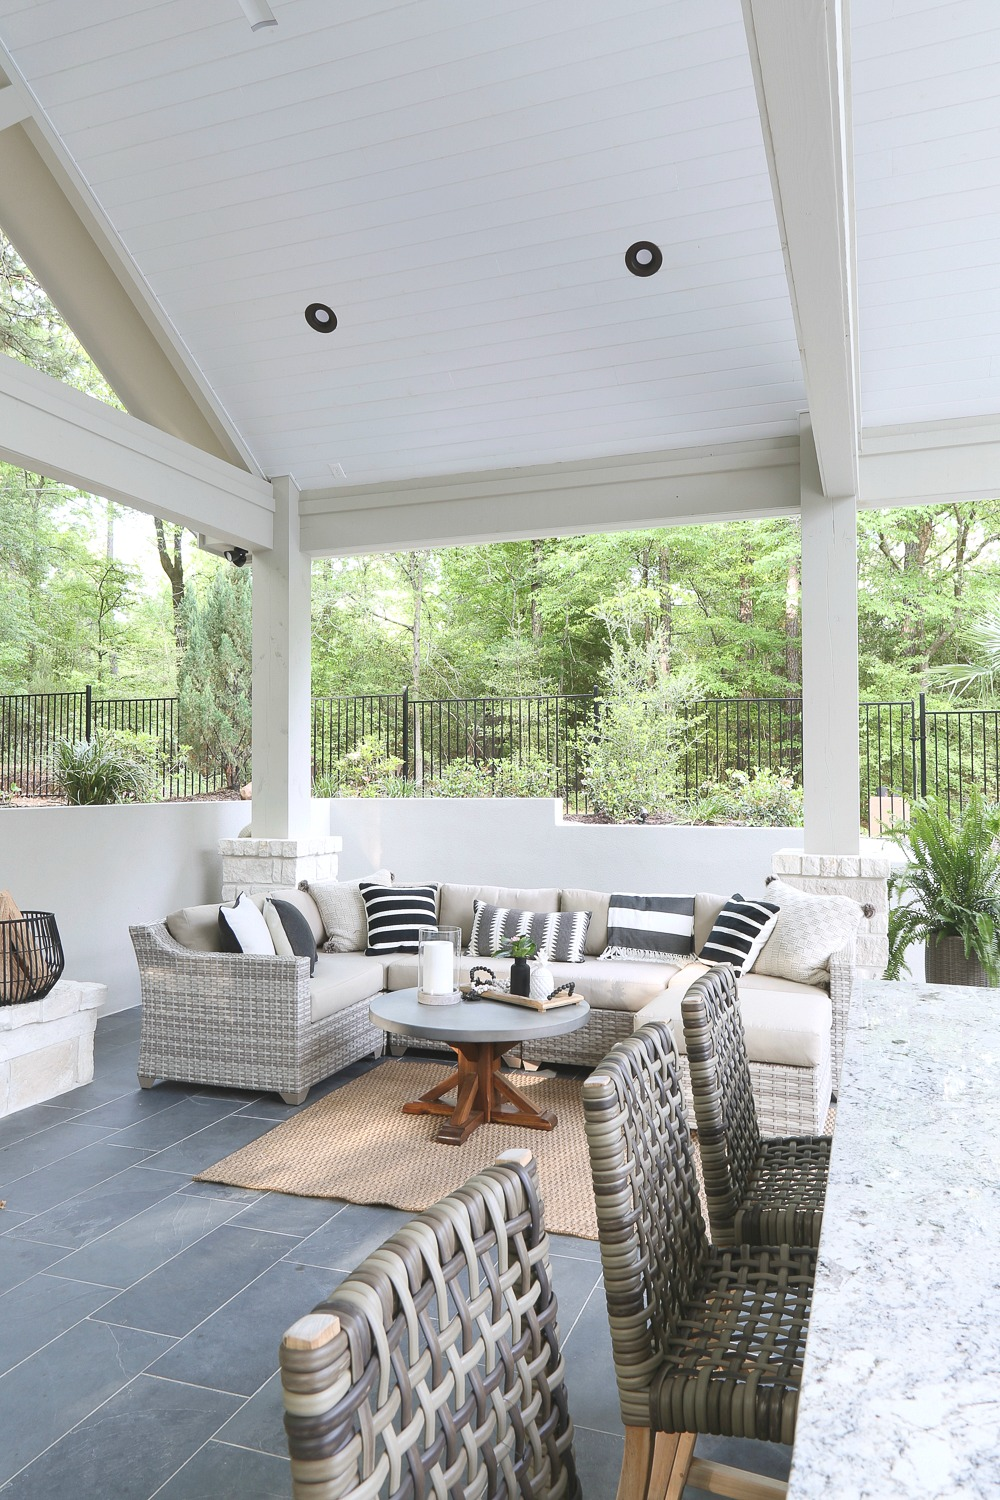 Be Inspired by This Dream Backyard Designed by Cyndy 9.jpg